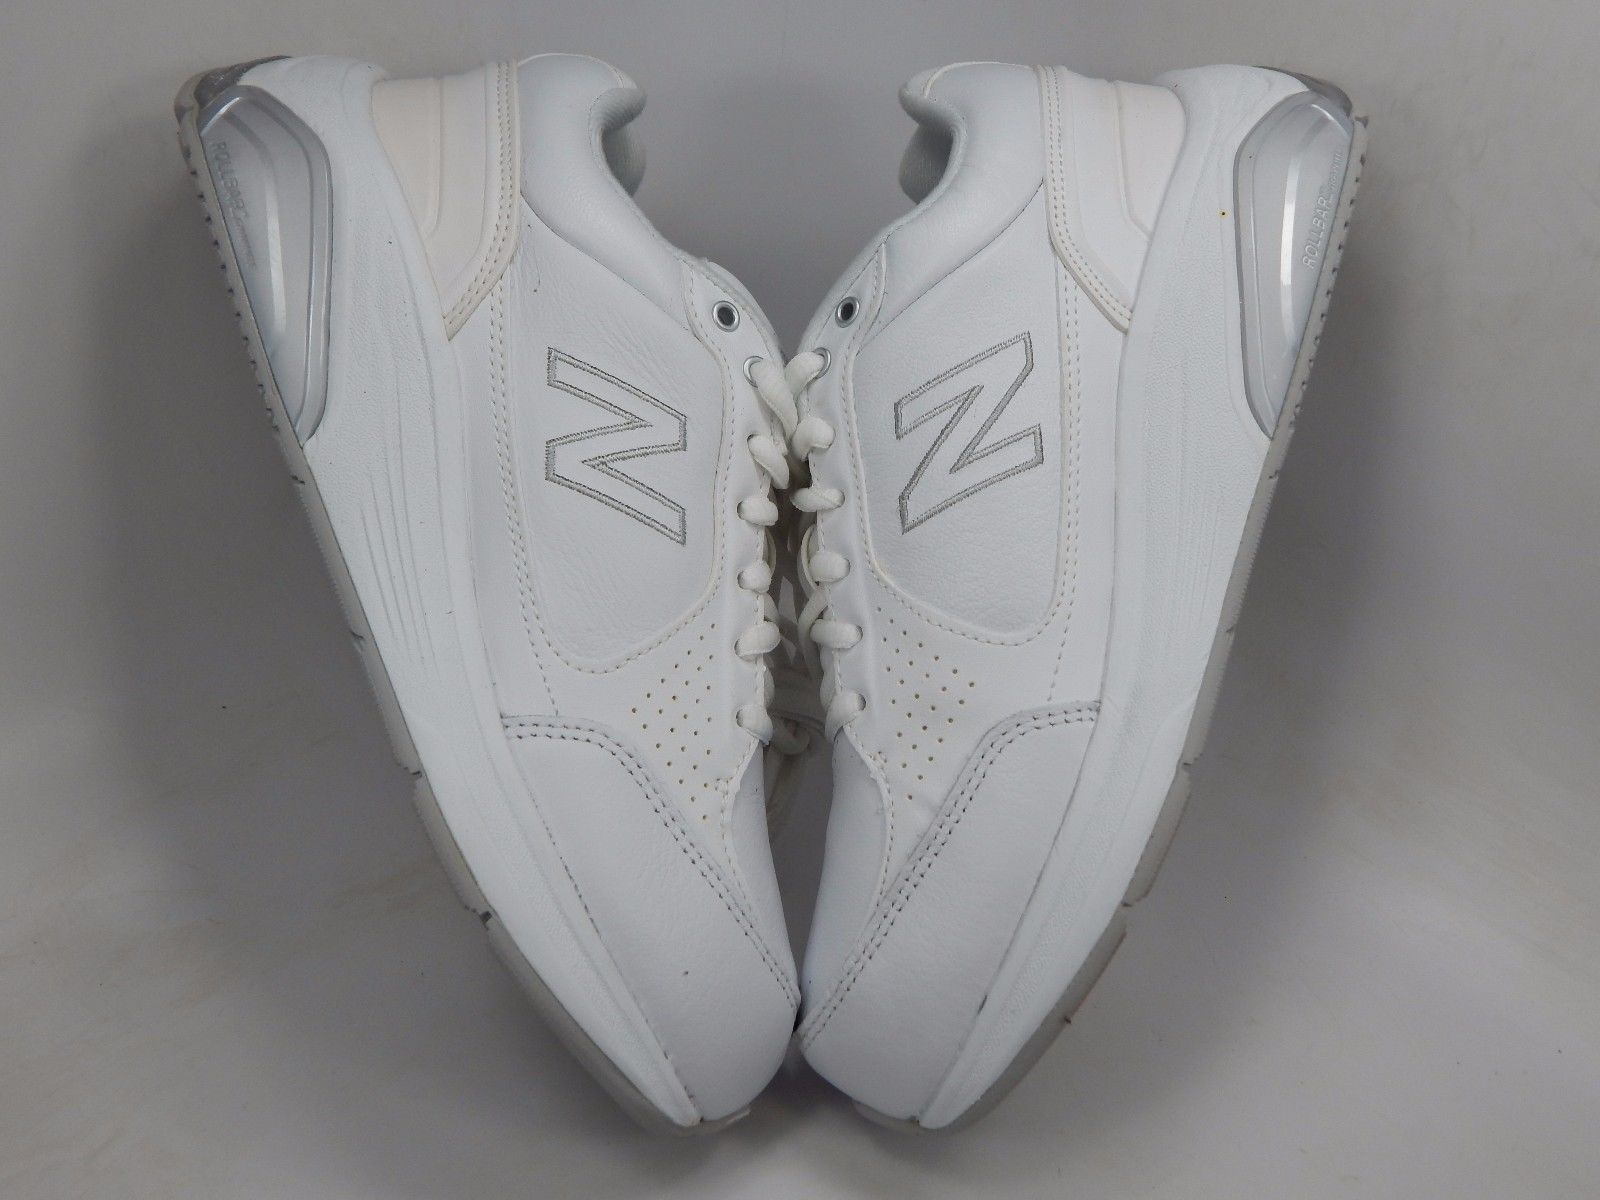 New Balance 928 Women's Walking Shoes Size US 5.5 D WIDE EU 36 White WW928WT